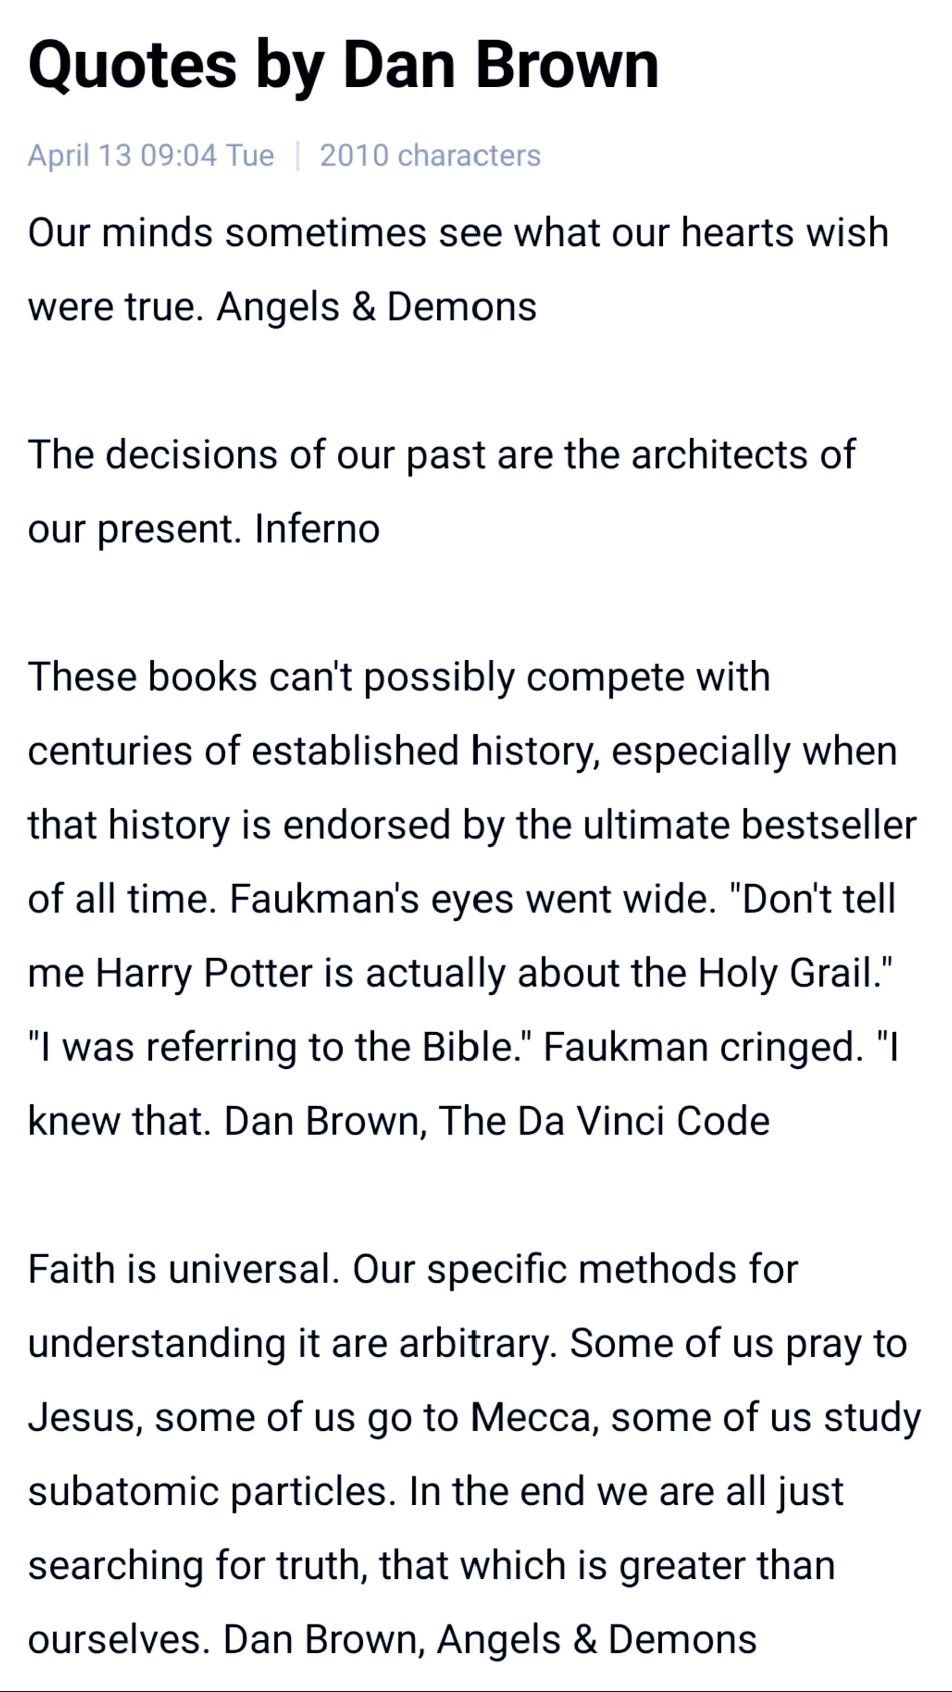 Video: Interesting Quotes By Dan Brown